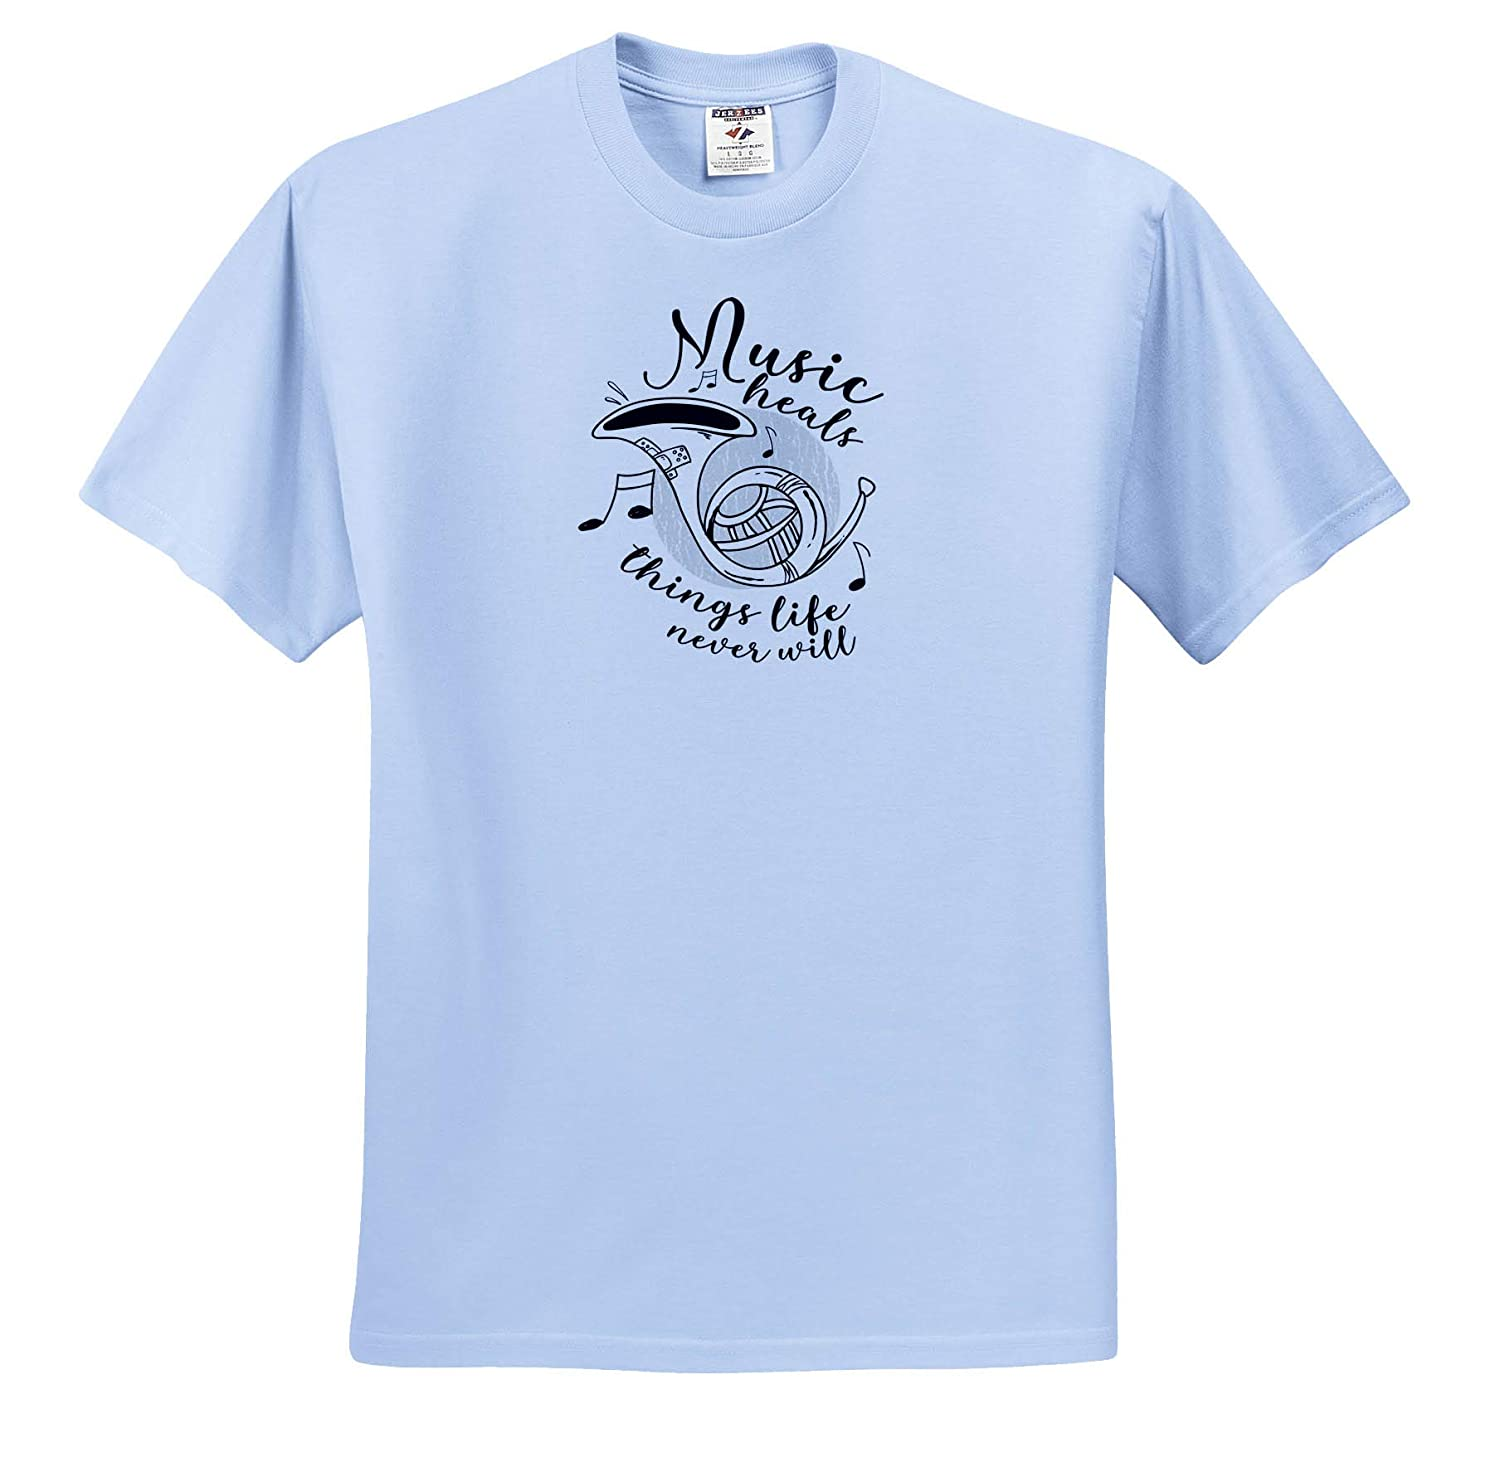 3dRose Sven Herkenrath Music Adult T-Shirt XL Music Heals Things Life Never Will Musically Clef ts/_319426